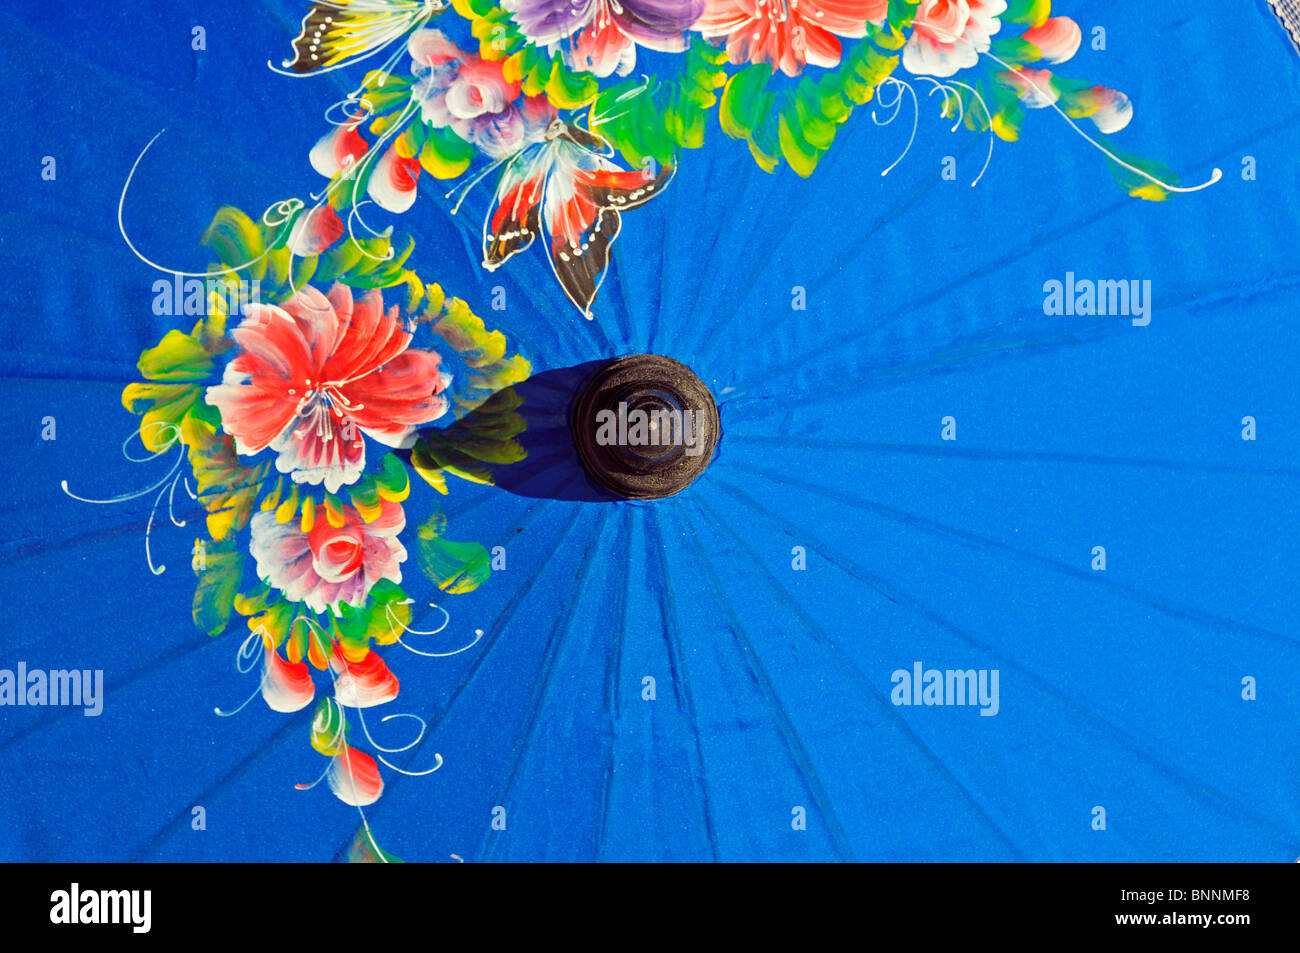 Paints Asia Stock Photos & Paints Asia Stock Images - Alamy